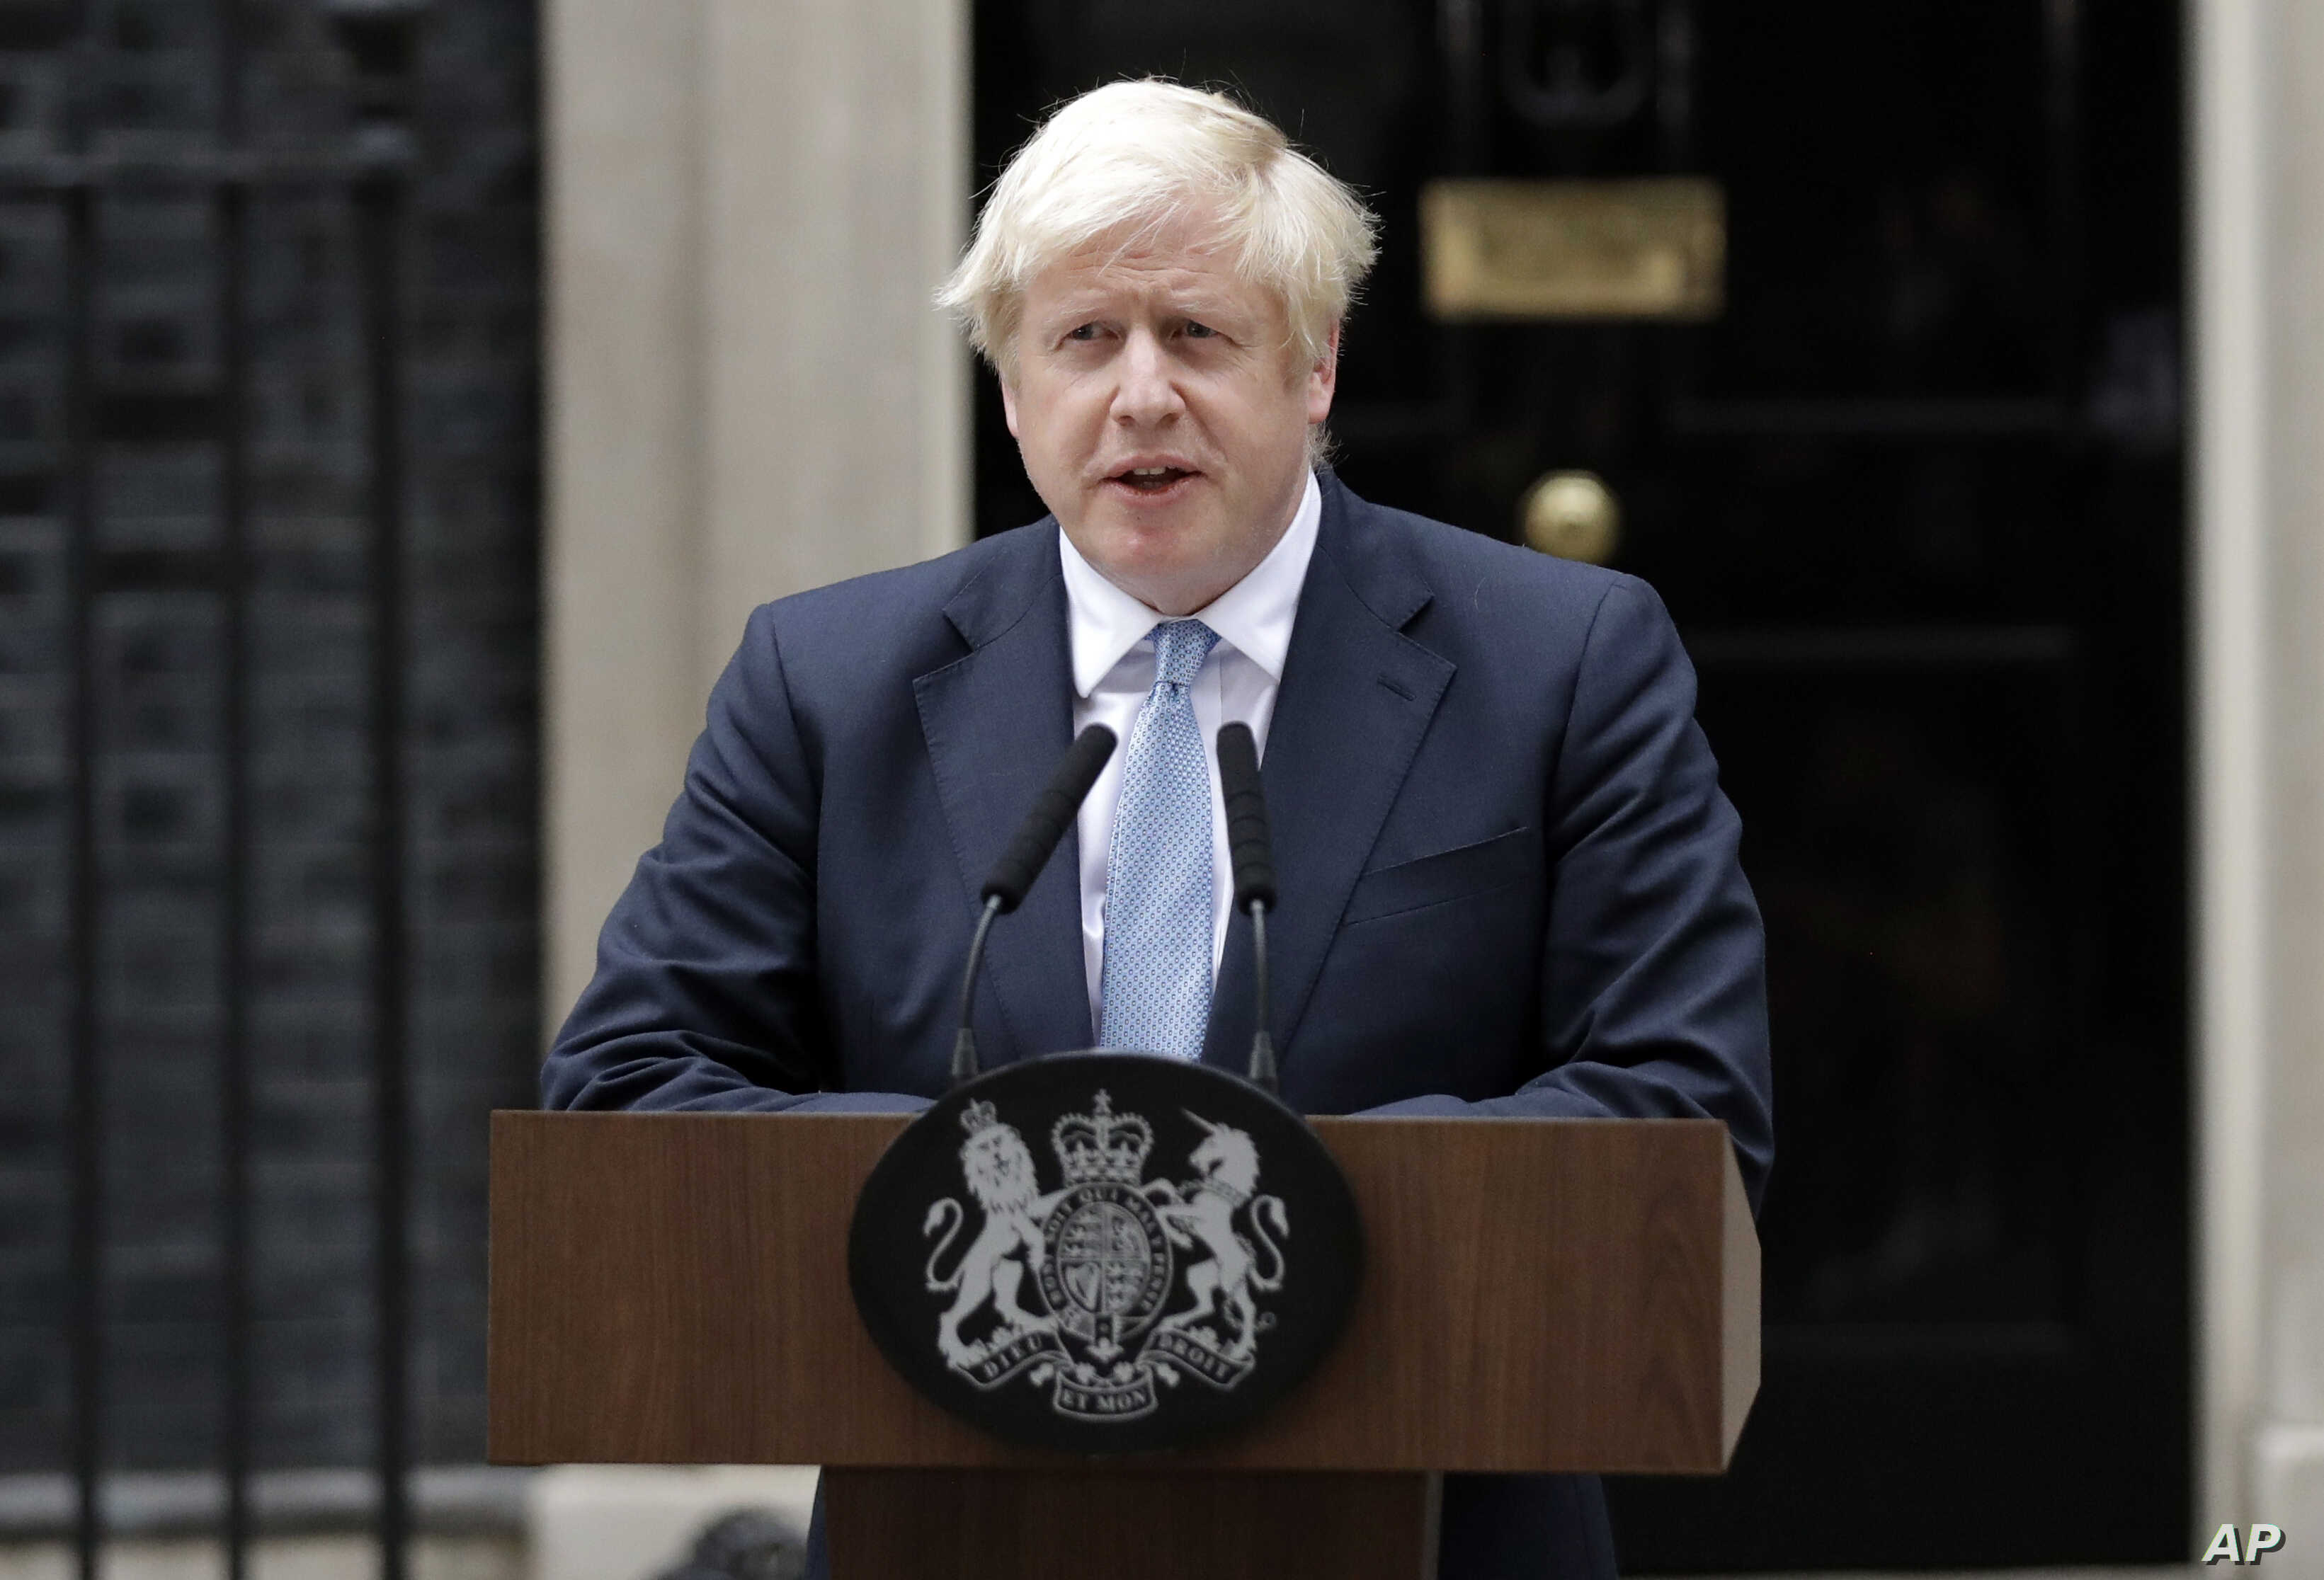 Britain's Prime Minister Boris Johnson speaks to the media outside 10 Downing Street in London, Sept. 2, 2019. Johnson says chances of a Brexit deal are rising .